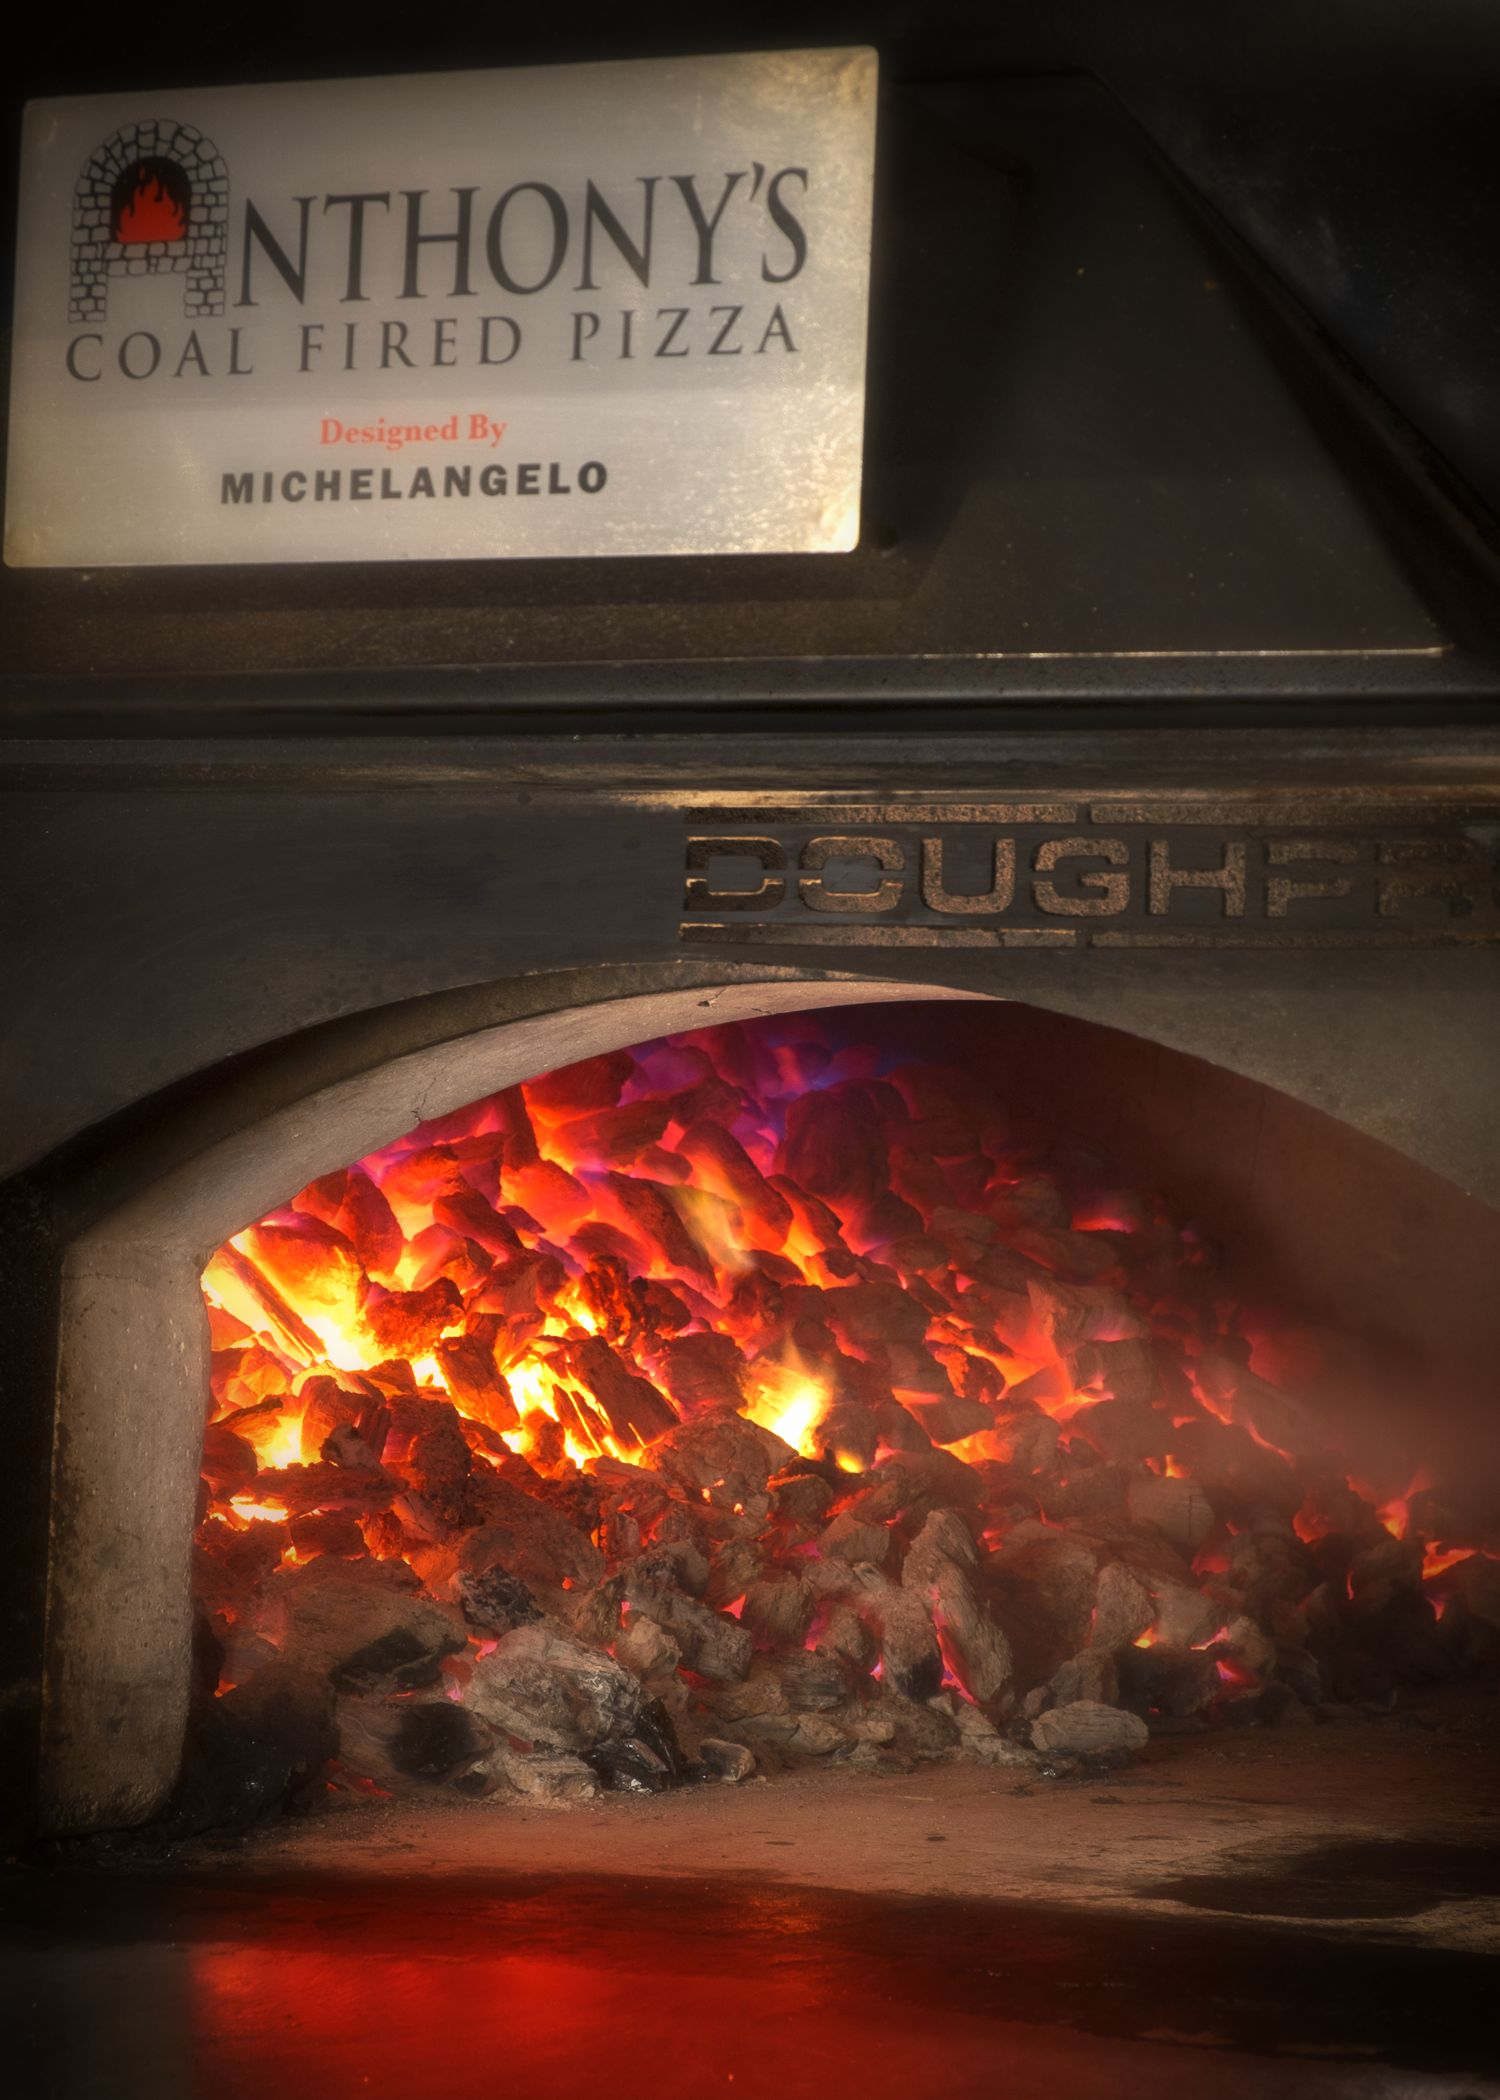 Anthony's Coal Fired Pizza Asks Fans To Give The Gift Of Coal This Holiday Season